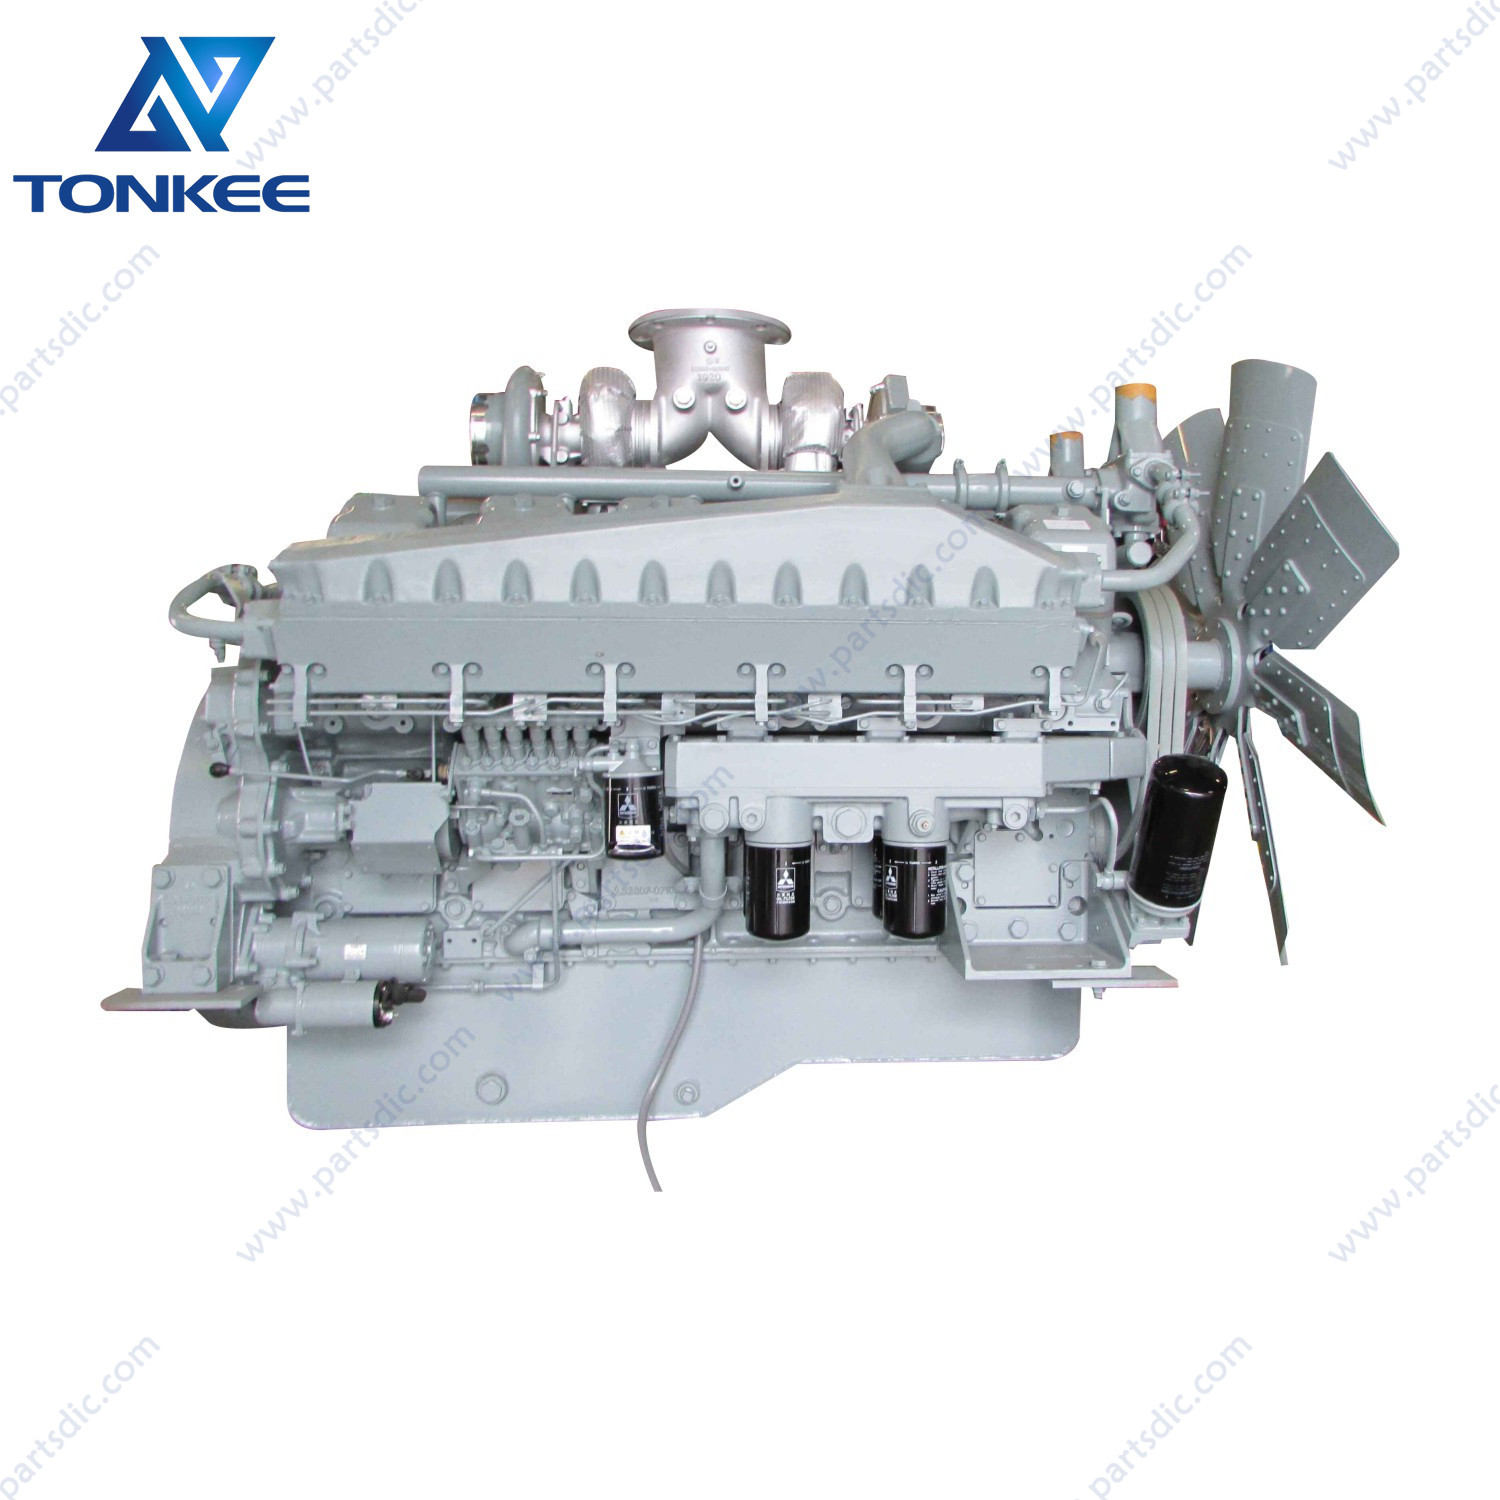 EX1900 EX1900-5complete diesel engine assy 9237308 S12A2 S12A2-Y1TAA1 S12A2-PTAdiesel engine assy Shovel excavatorsuitable forHITACHI